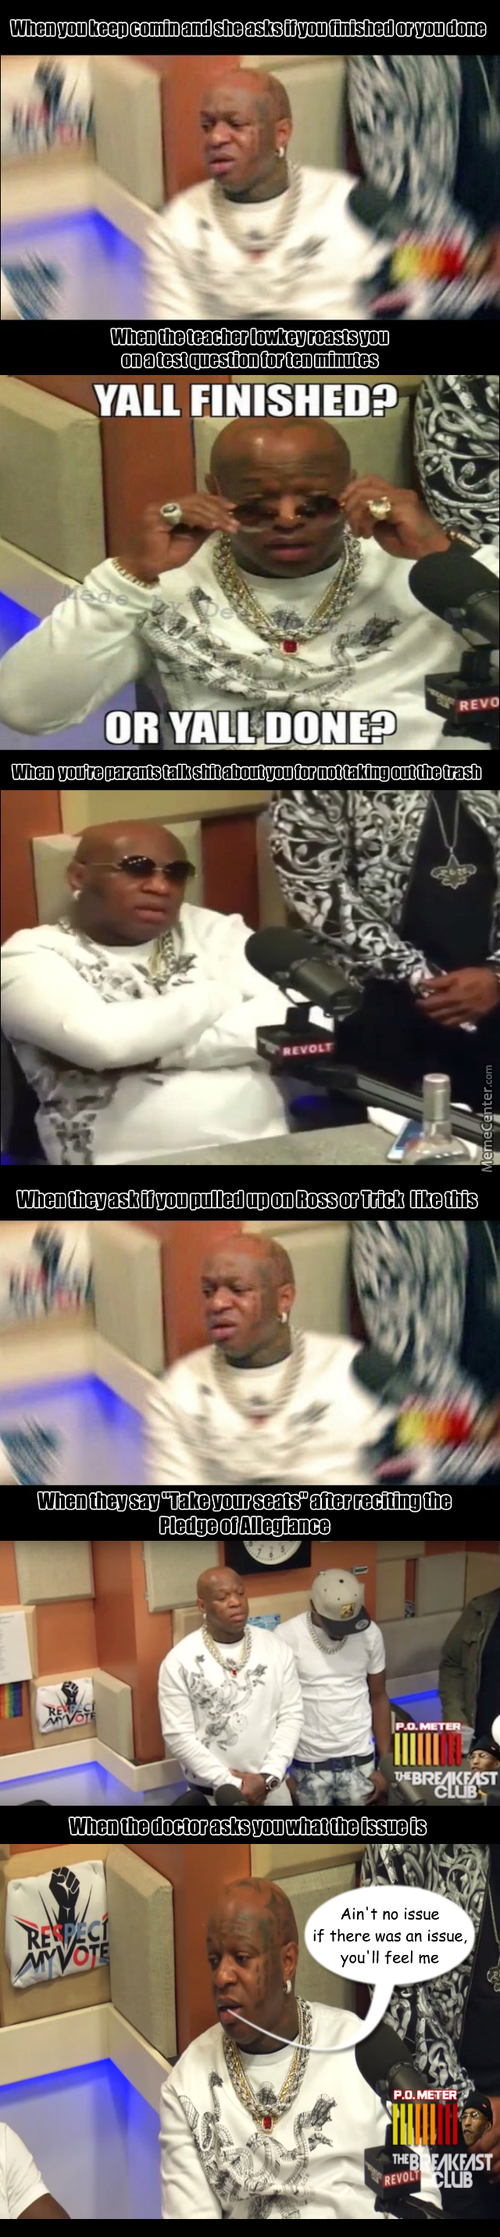 When You See My Meems, Put Some Respeck On It